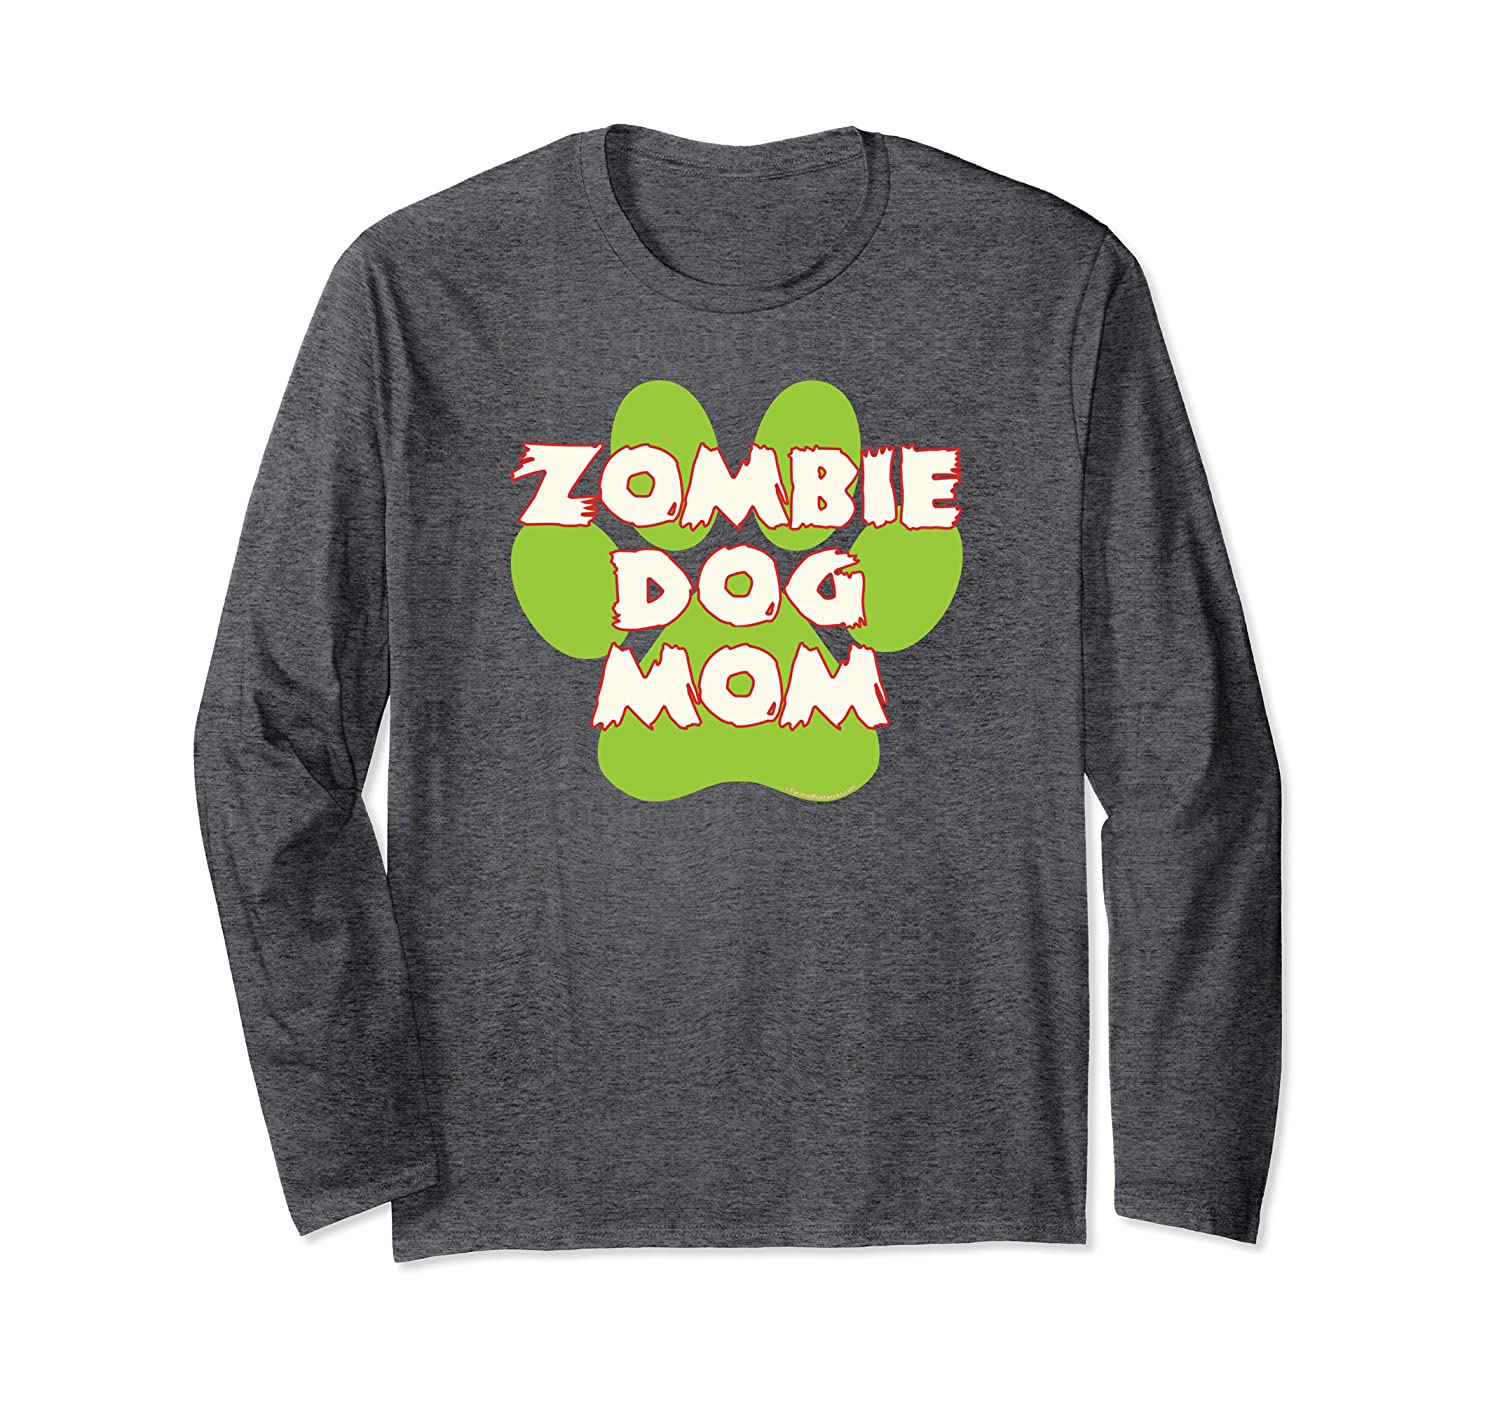 Zombie Dog Mom Funny Halloween Ghoul Green Paw Print Long Sleeve T-Shirt